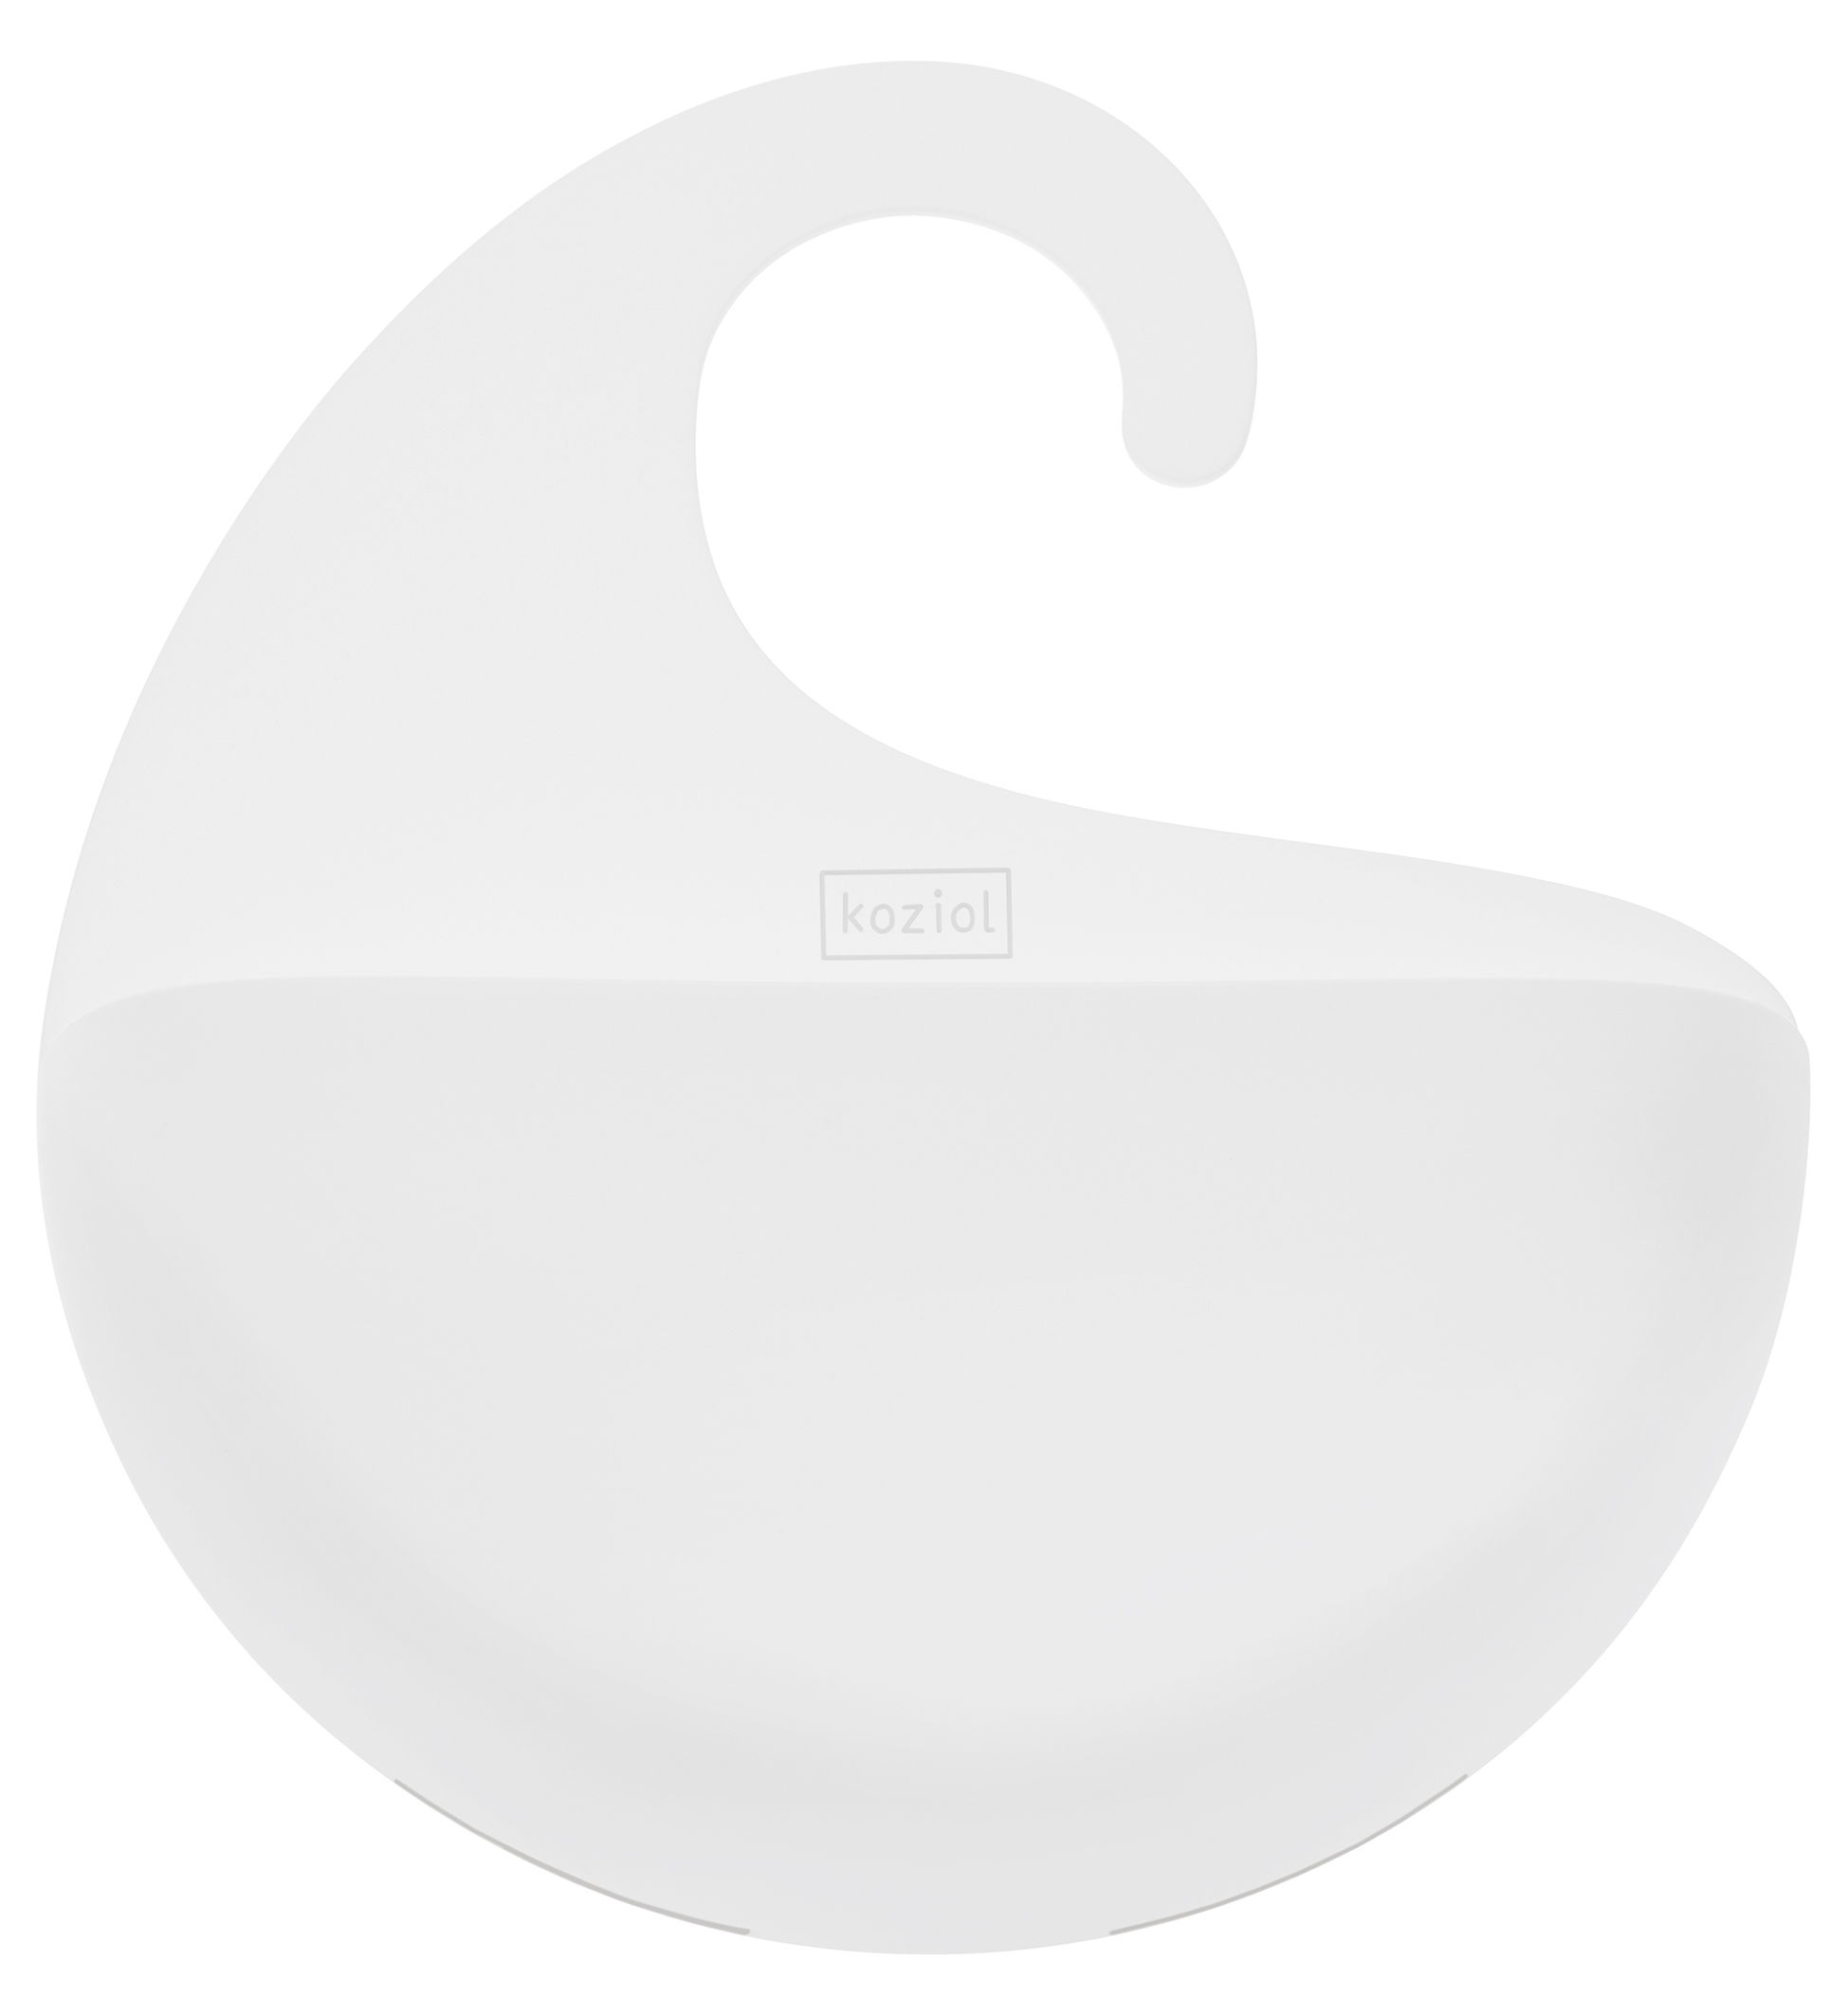 Decoration - For bathroom - Surf Storage box - To hang by Koziol - Solid white - Plastic material